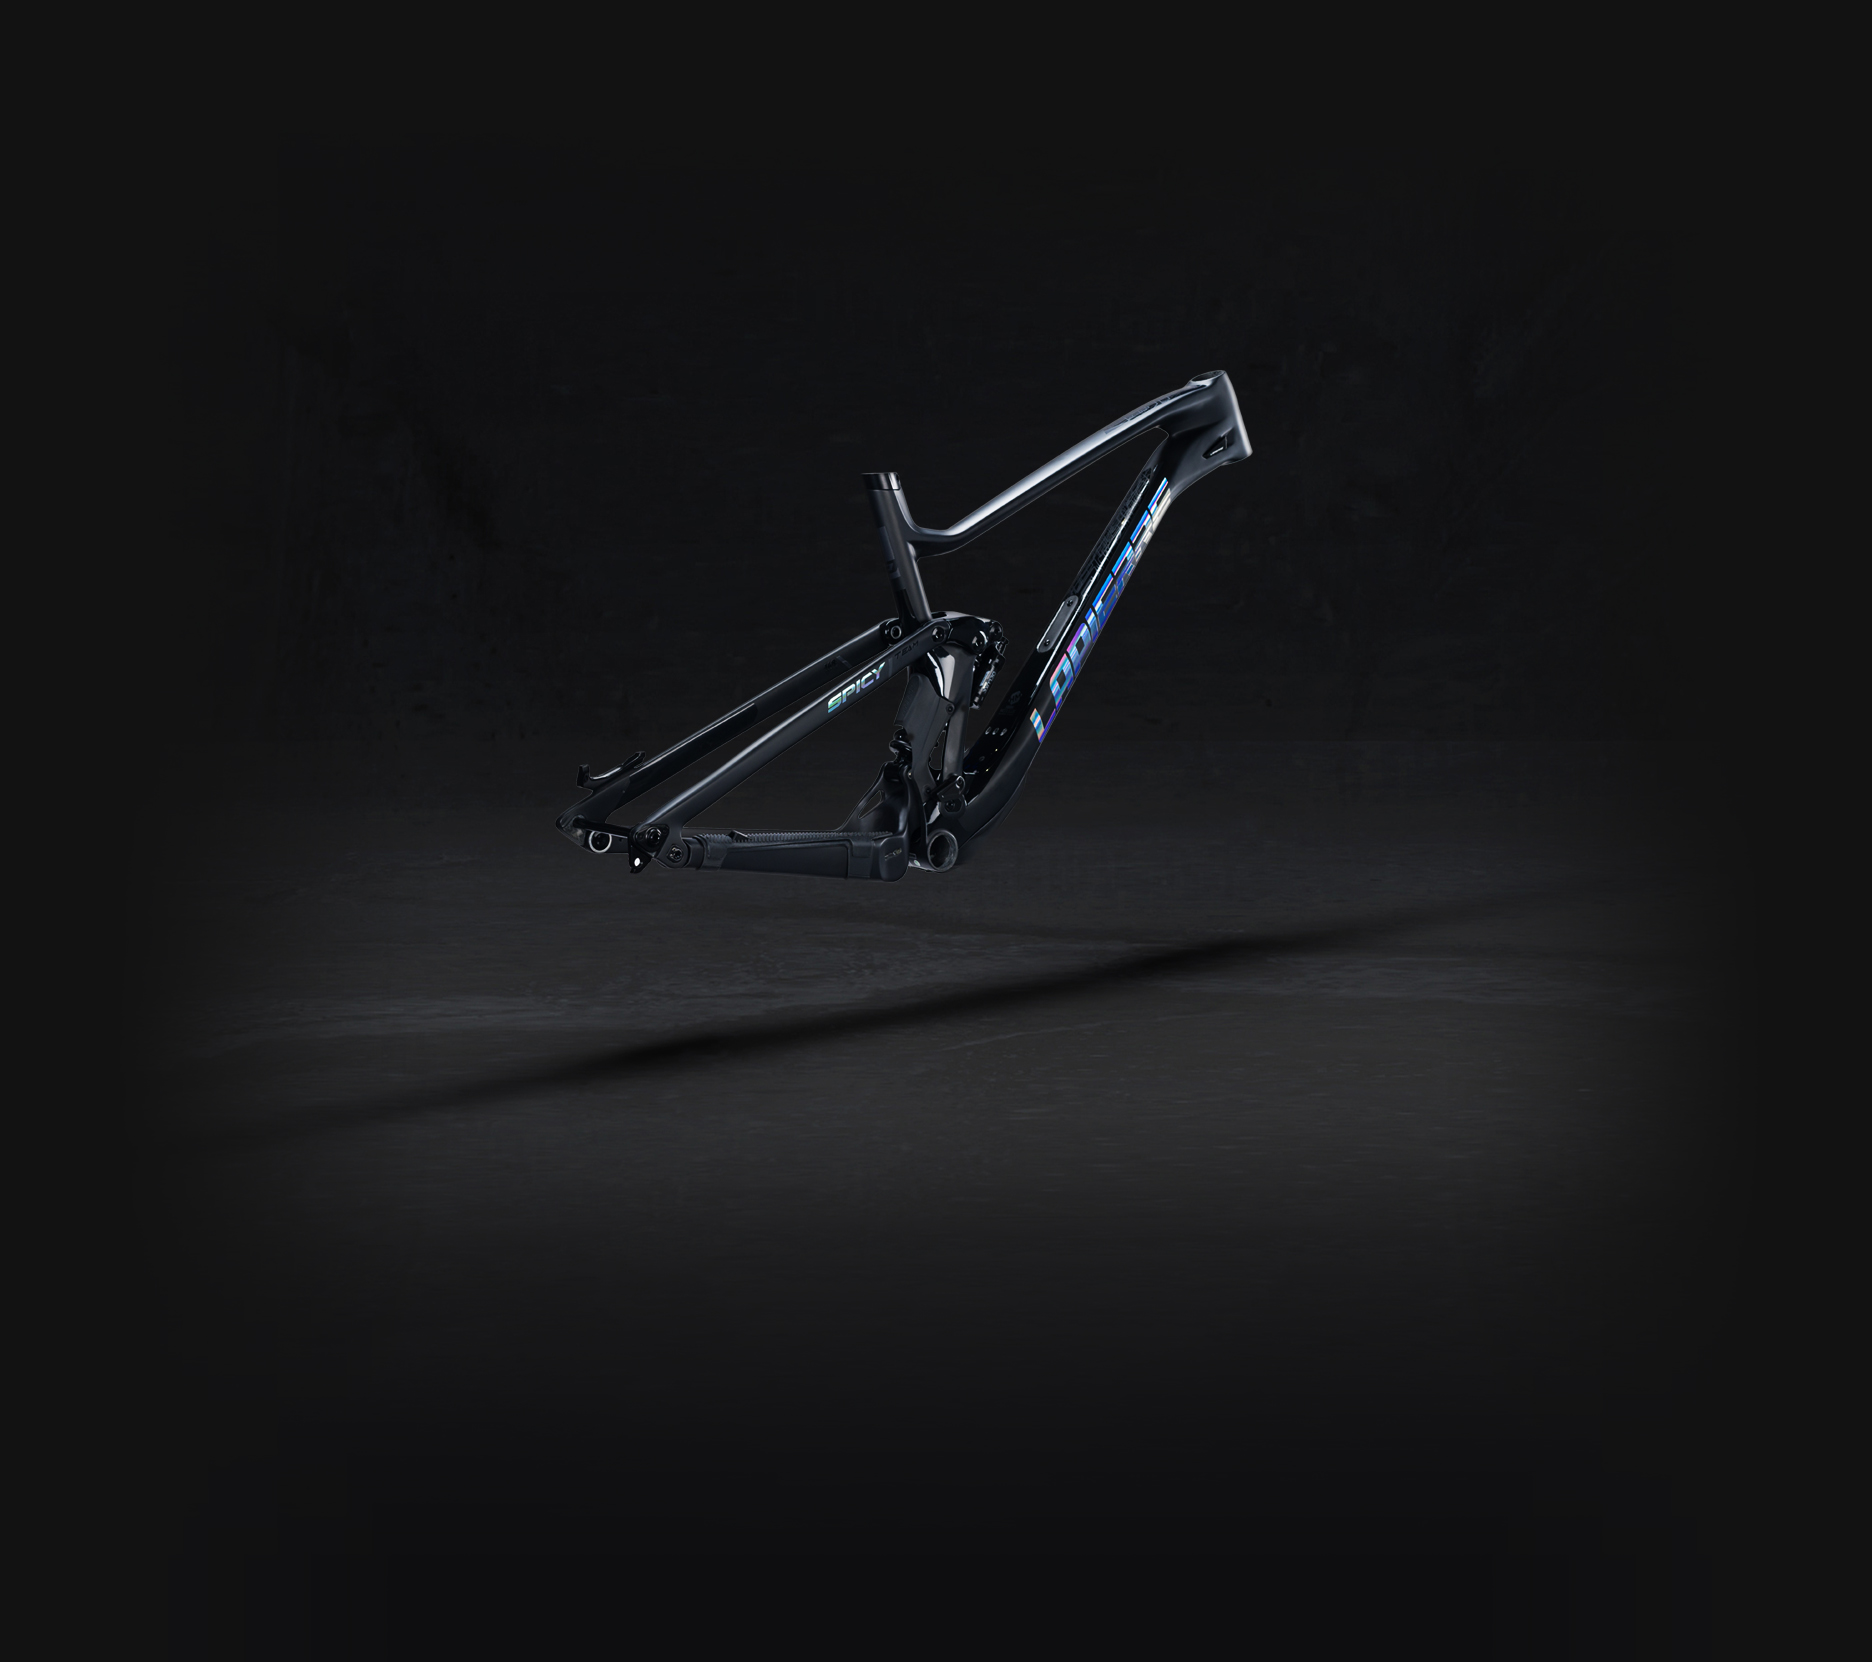 Lapierre Spicy team frame kit right side view on a black background